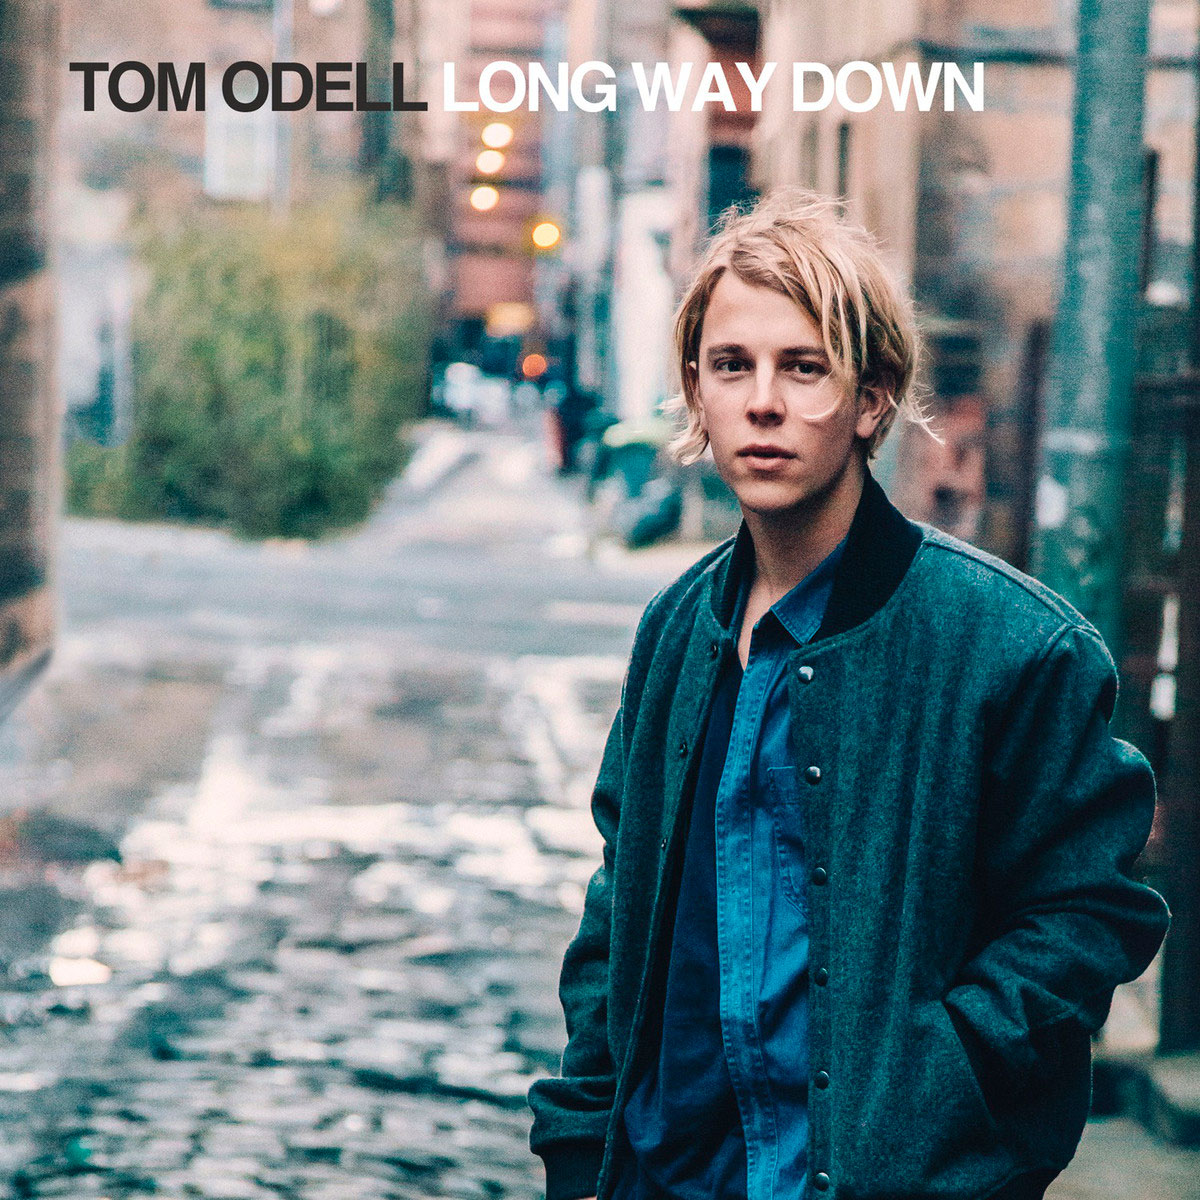 Tom Odell, portada del disco Long way down